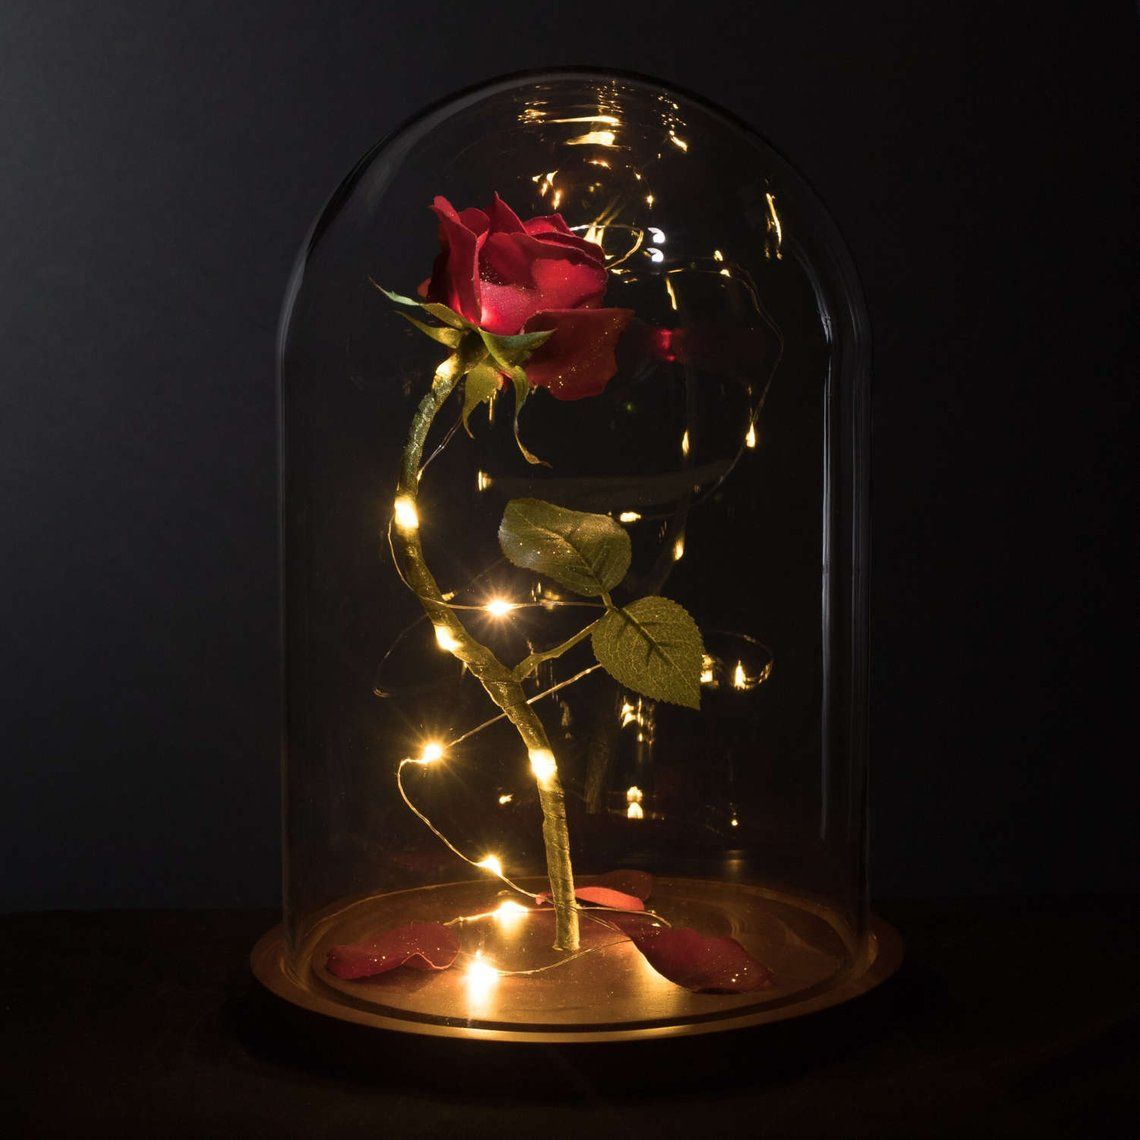 Enchanted Rose Life Sized From Beauty And The Beast Valentine S